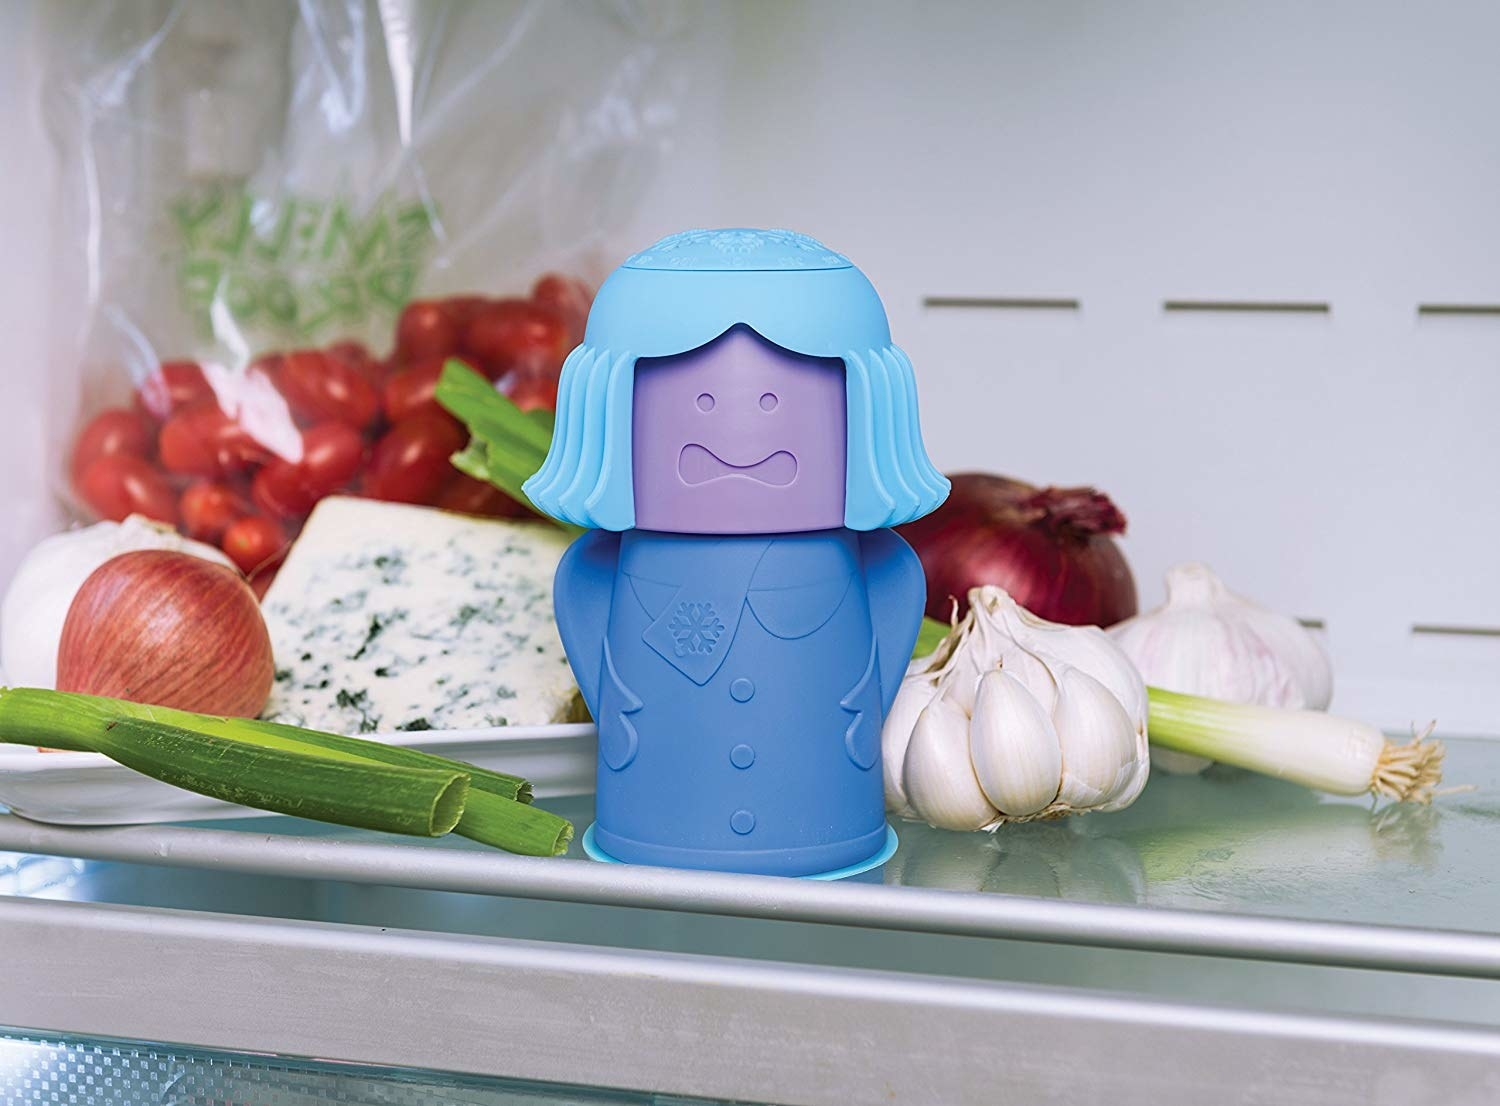 container that looks like a cold person on a fridge shelf with stuff like blue cheese, garlic, and onions